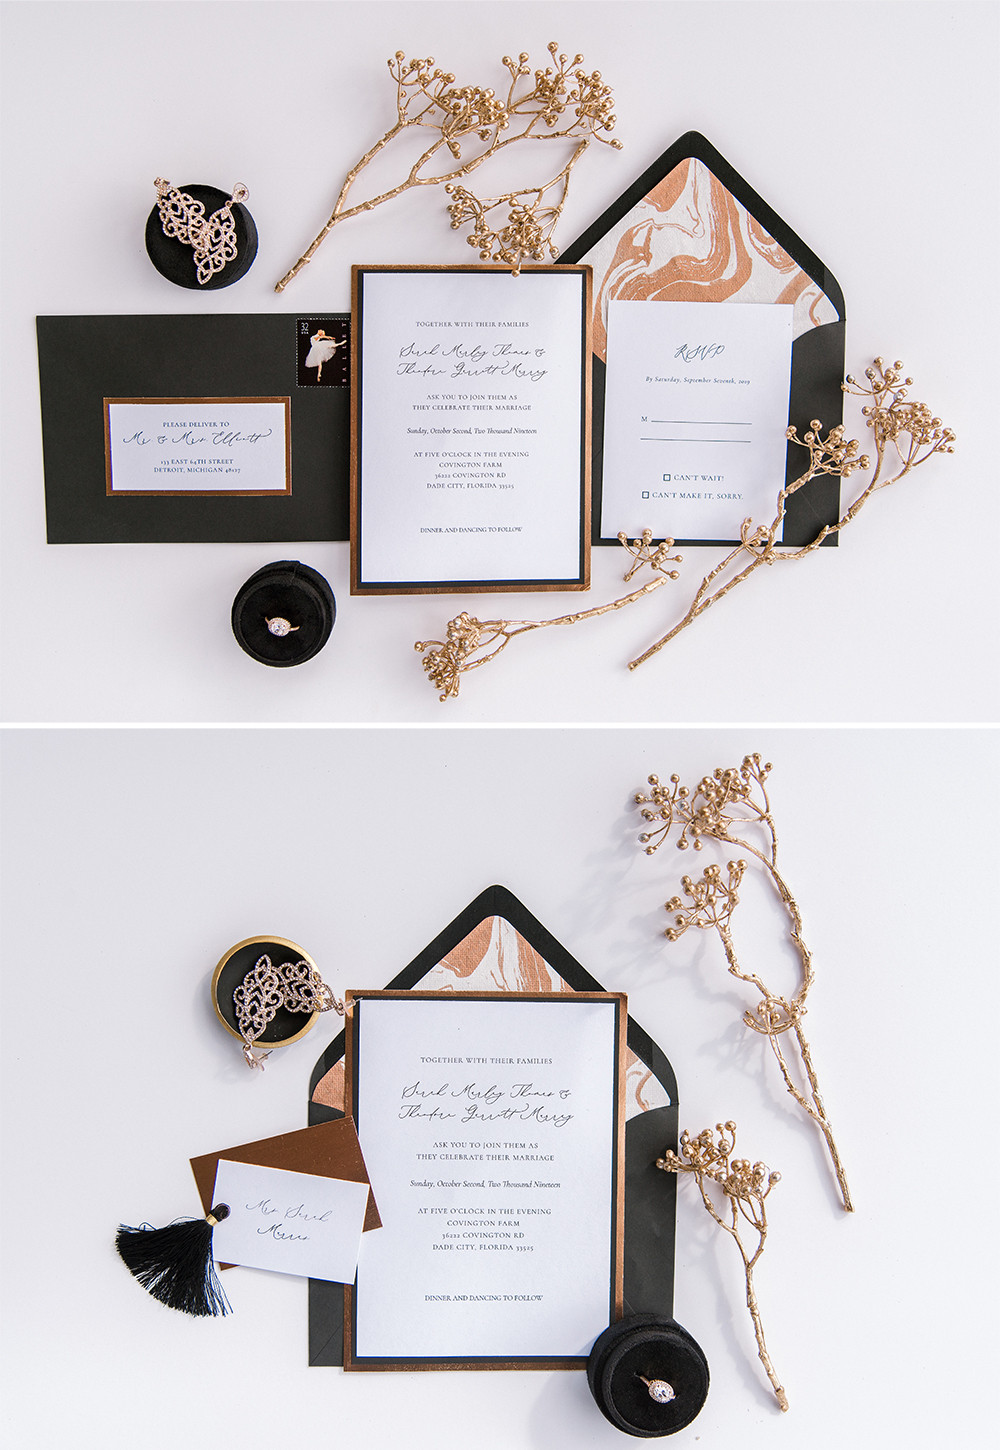 Tampa wedding photographer Nina Bashaw photography share a black and copper wedding at Covington Farms in Dade City